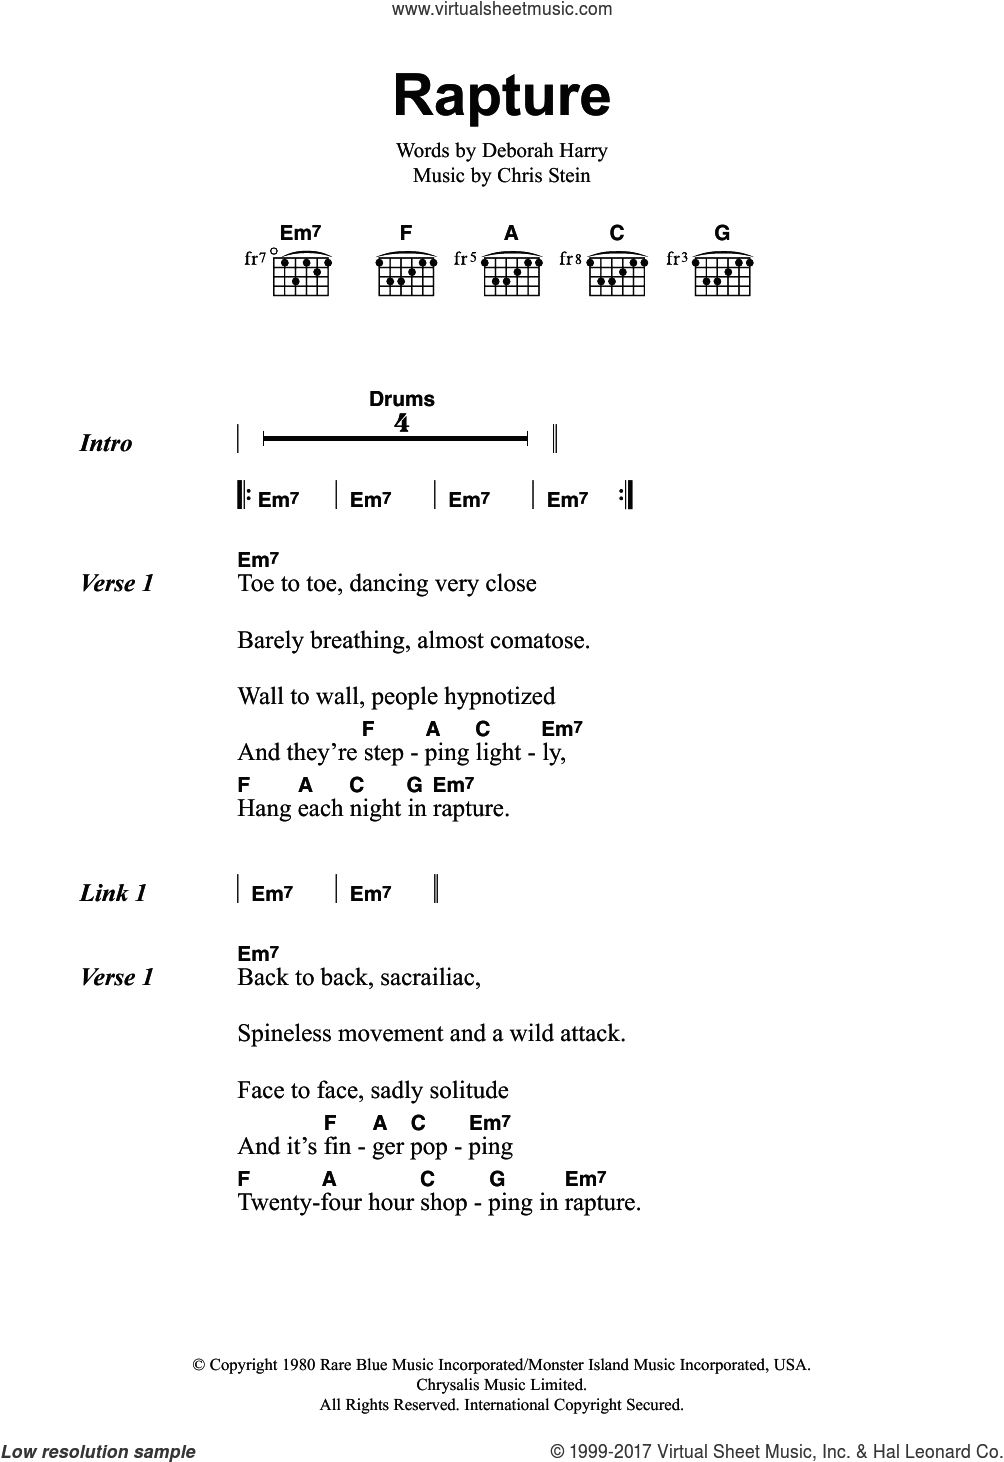 Rapture sheet music for guitar (chords) by Blondie, Chris Stein and Deborah Harry, intermediate skill level